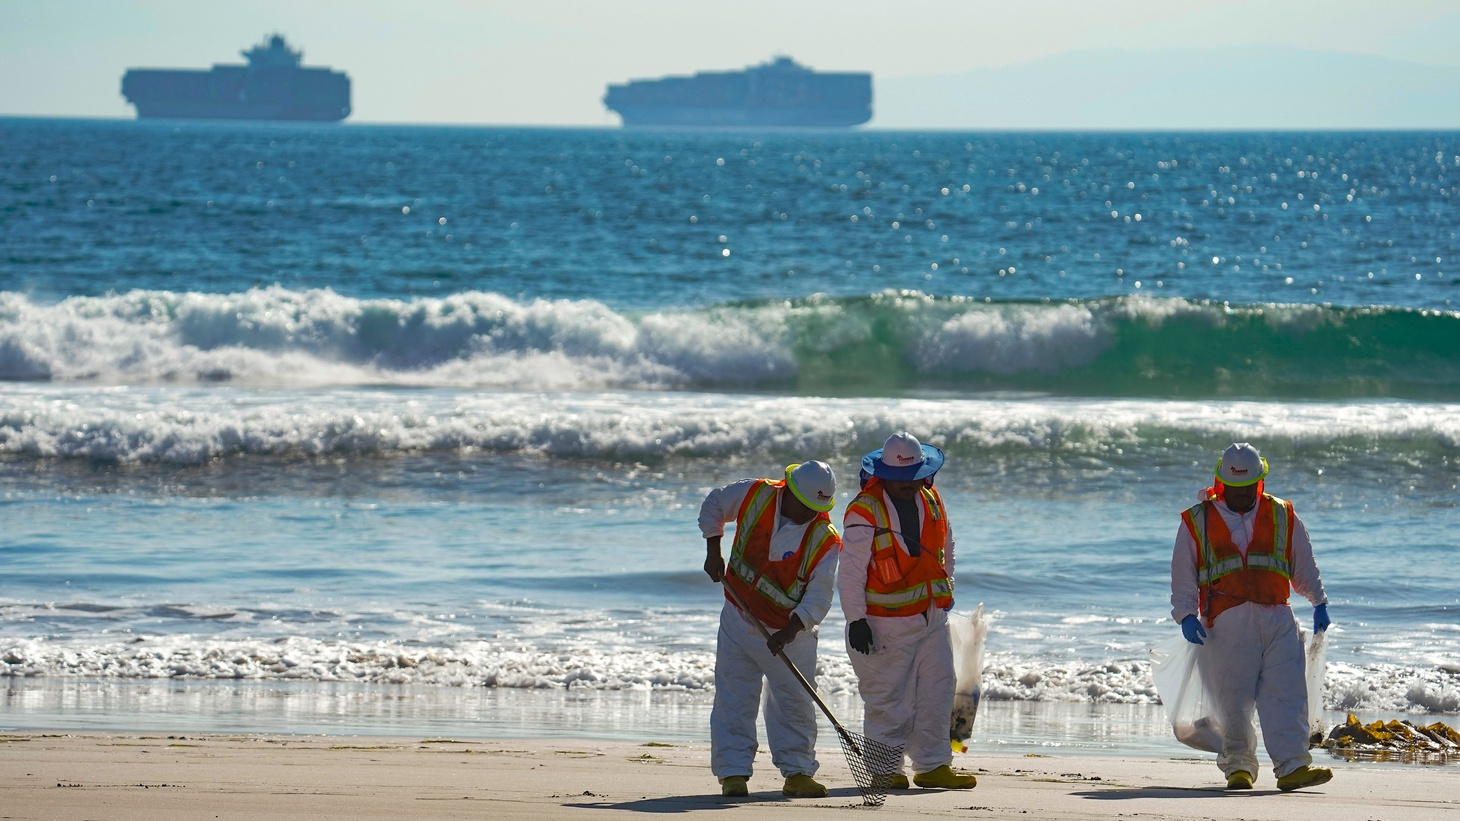 A cleanup crew walks along Huntington Beach, looking for spots of oil, October 5, 2021.